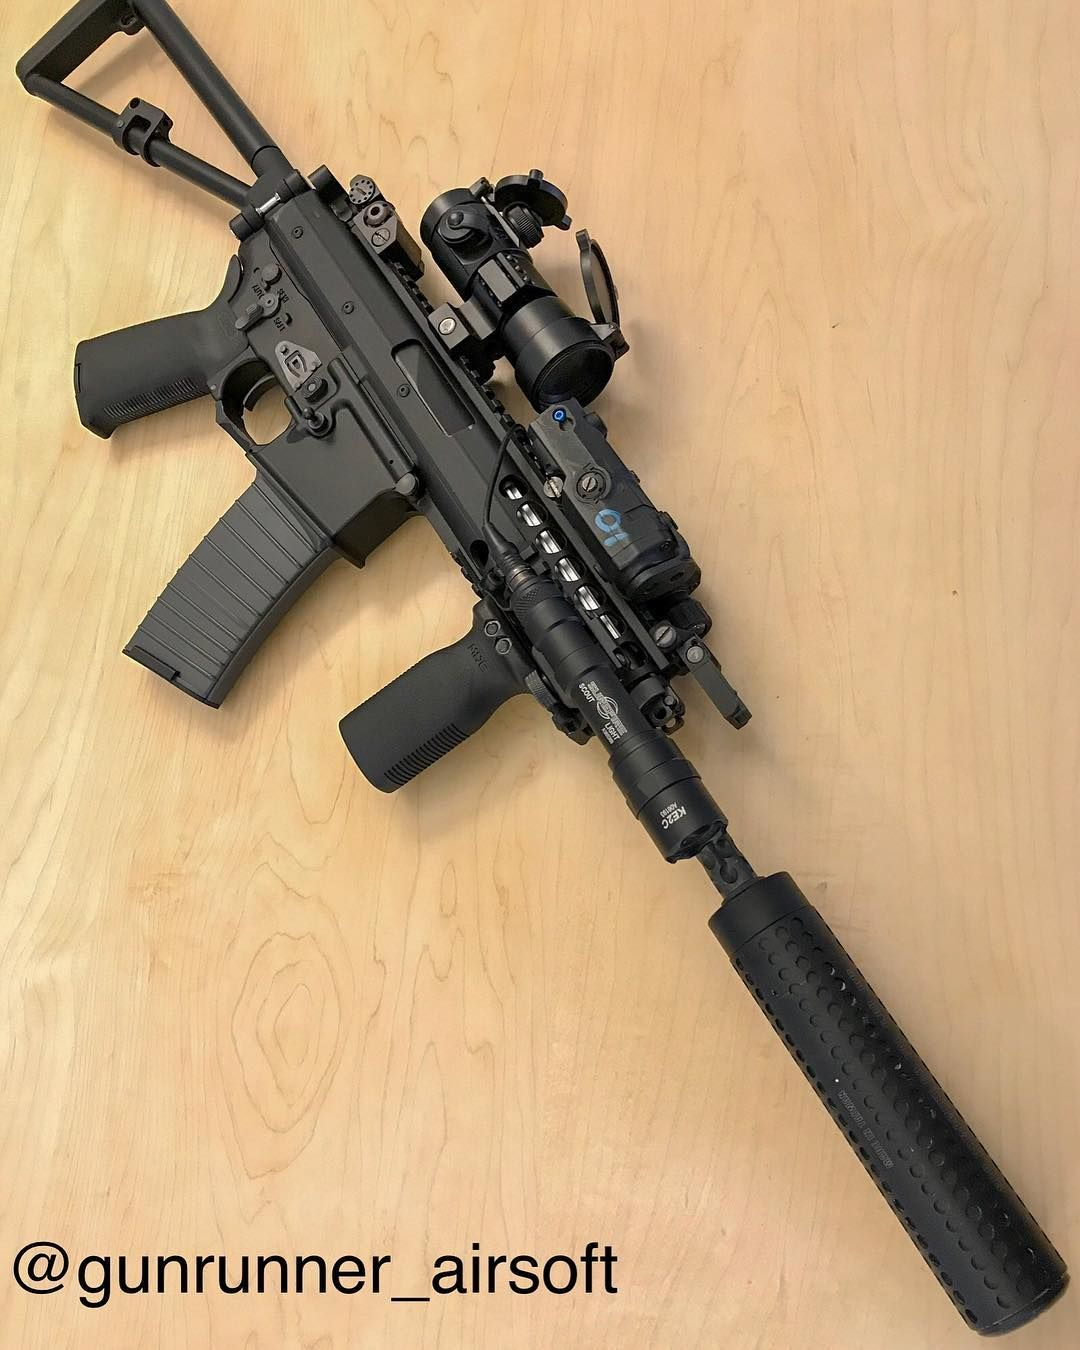 The KAC PDW offered superior firepower in a compact platform